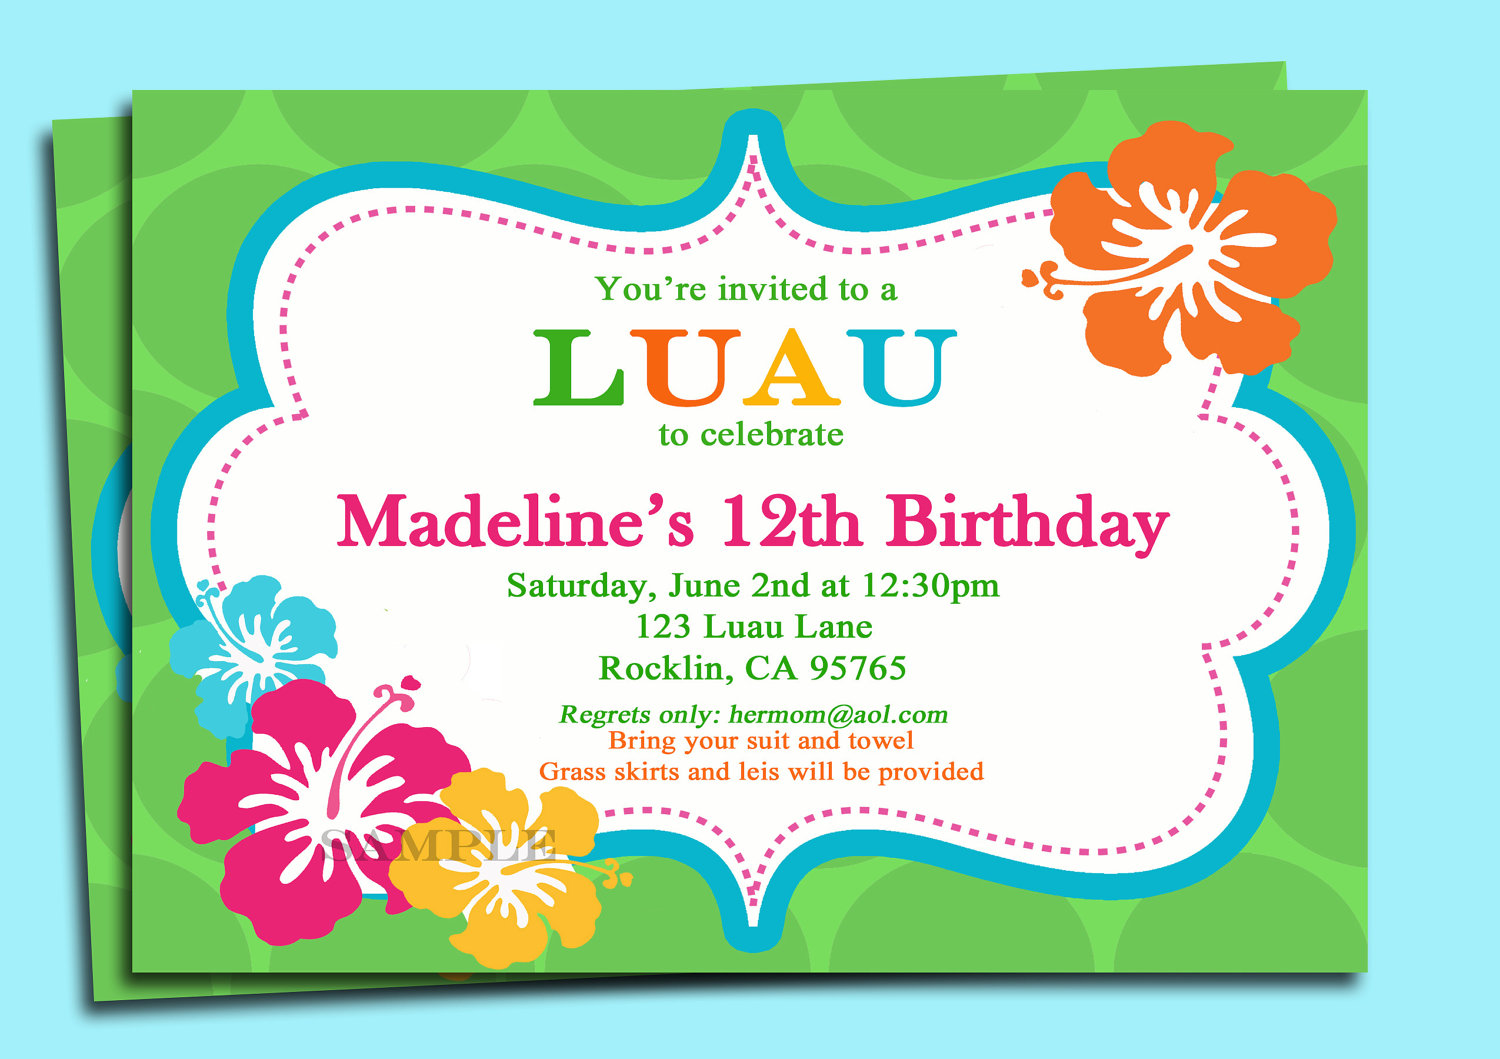 luau invitations templates free - 9 best images of free printable luau invitations free